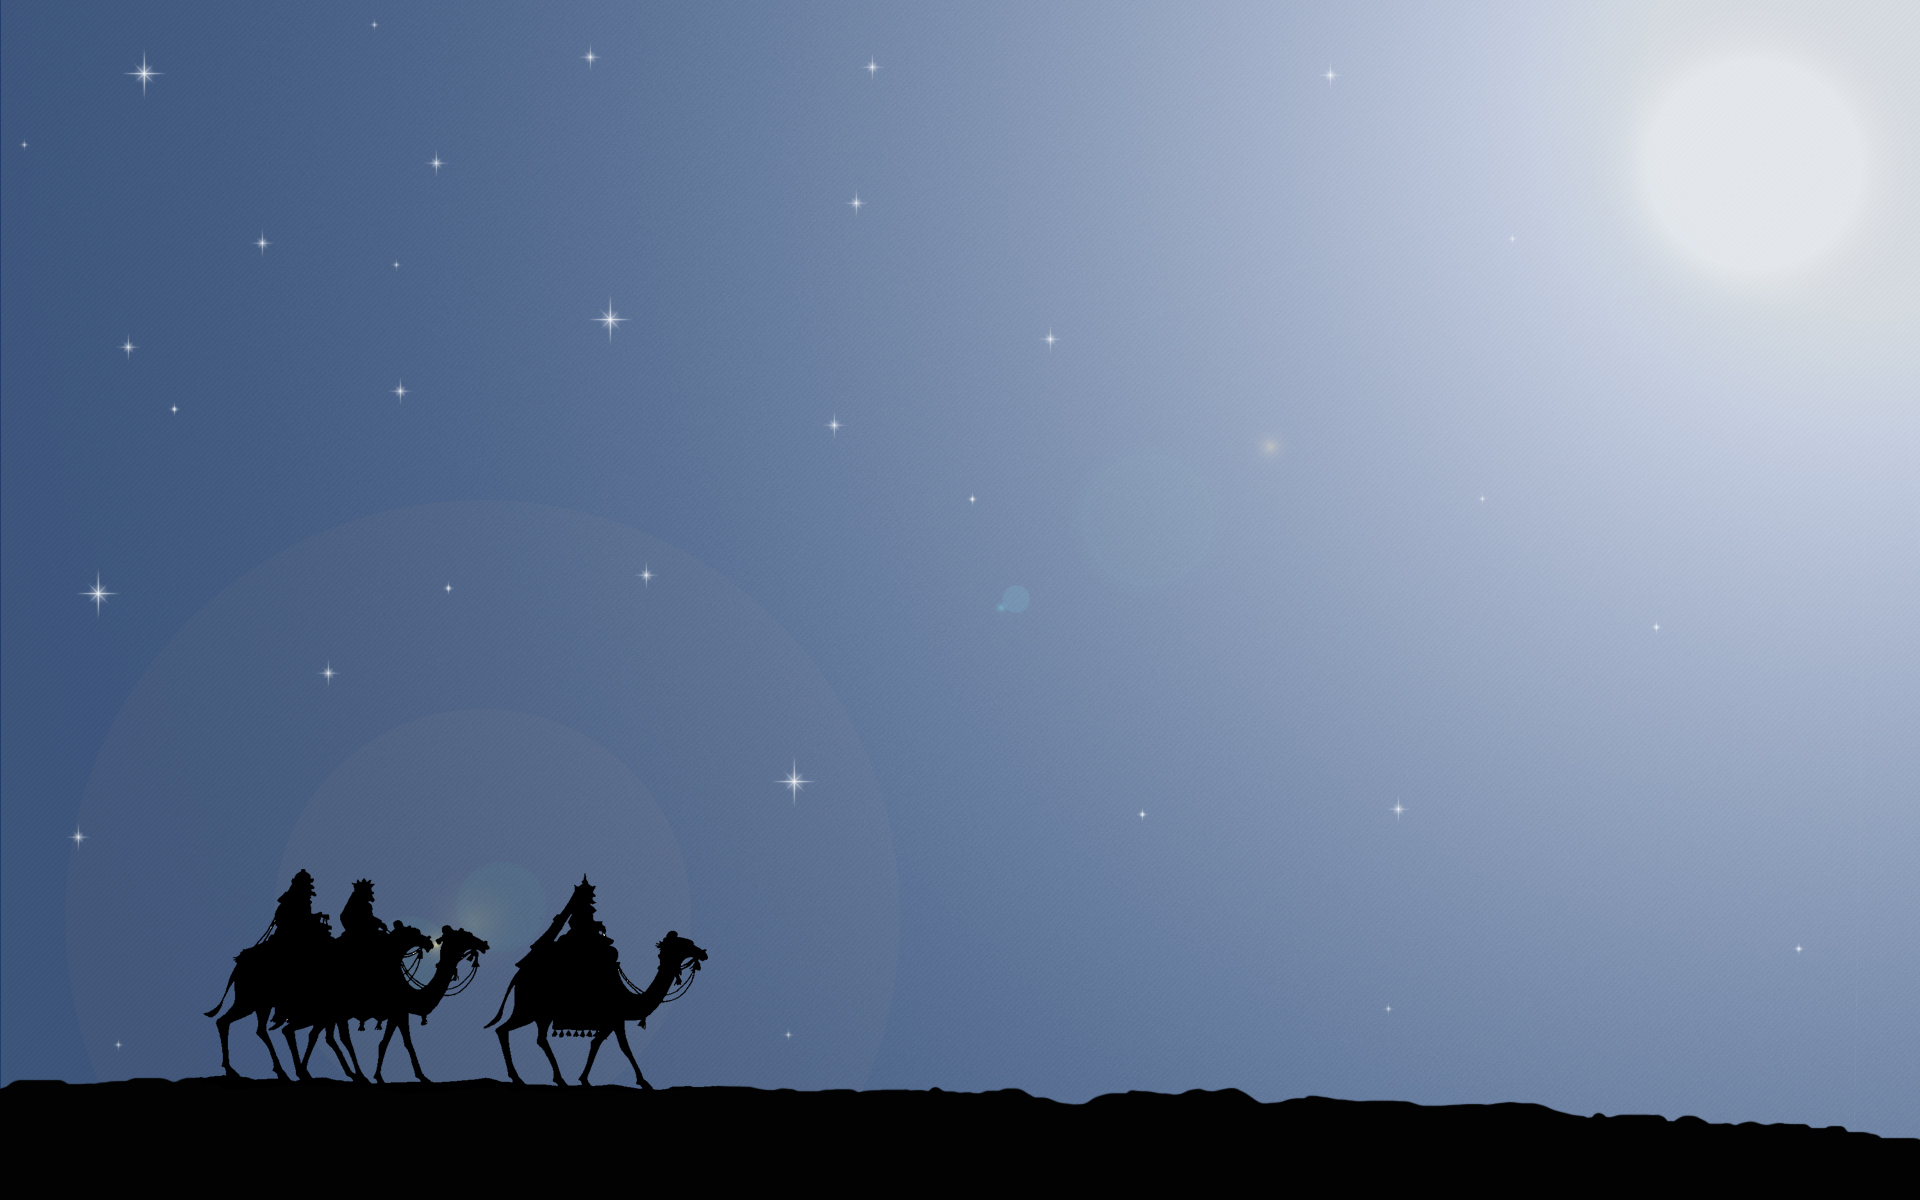 christmas-wise-men-camels-the-star-of-the-road-the-road-bethlehem-gifts-gifts-travel